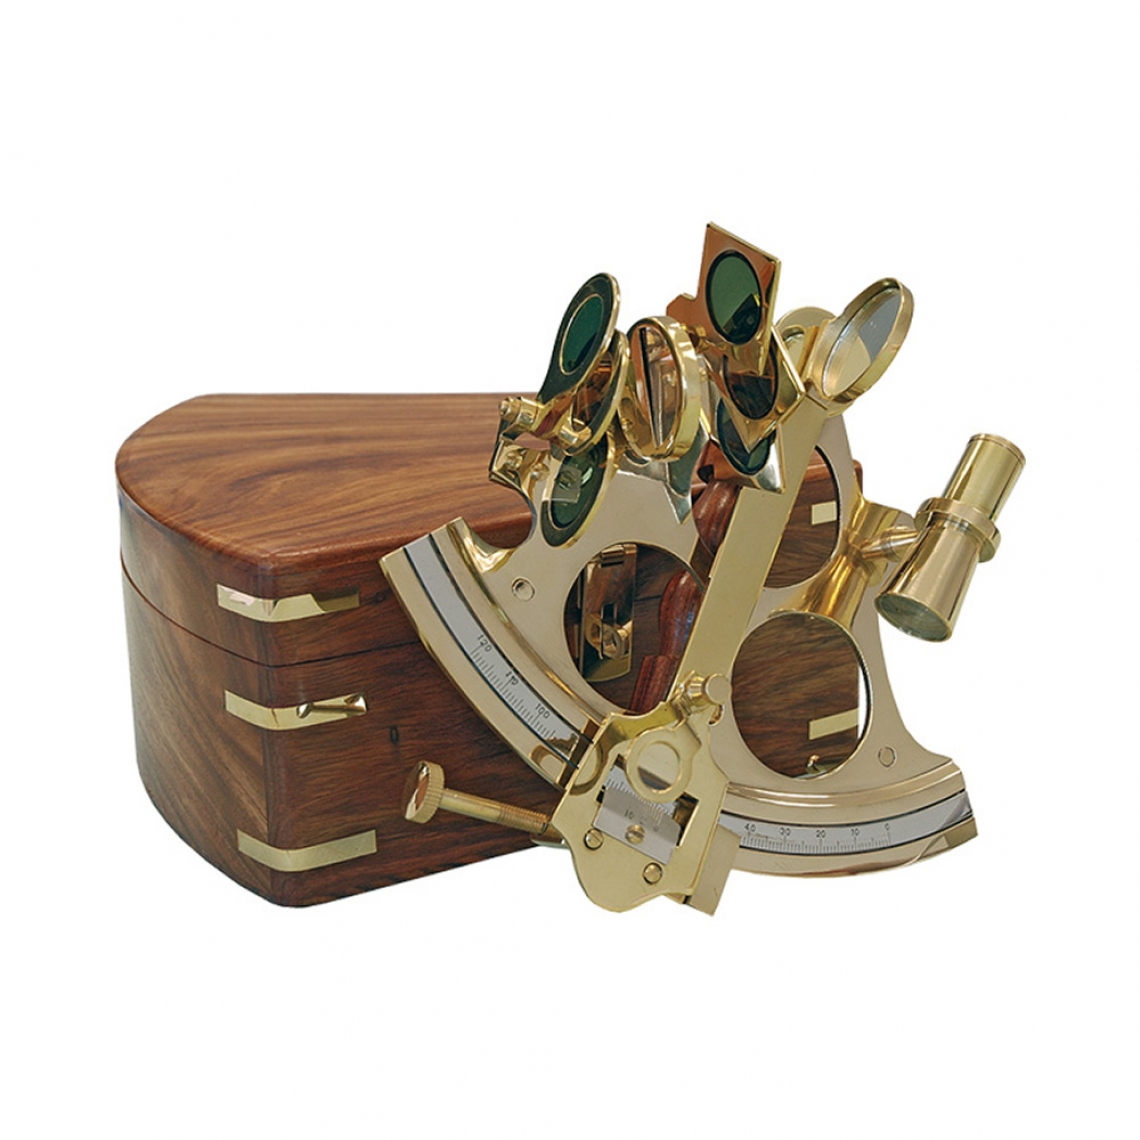 Sextant in Brass with a Wooden Box